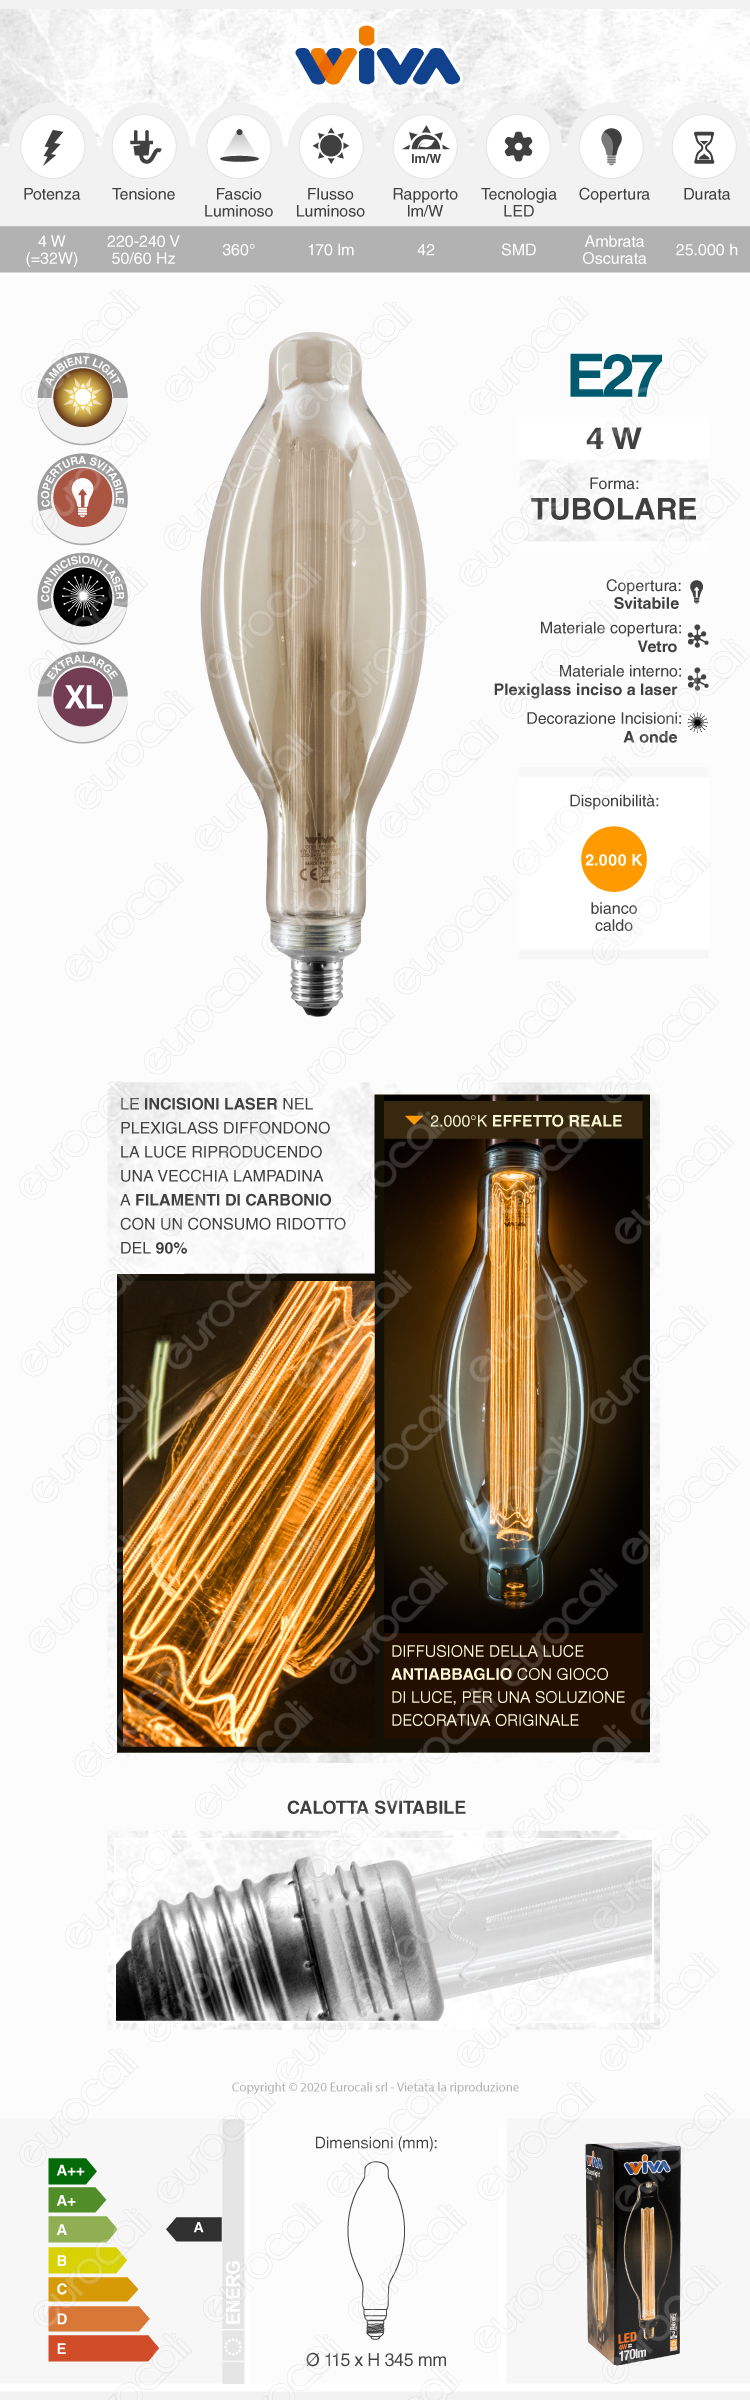 Wiva GlassLight Fumè Lampadina LED E27 4W